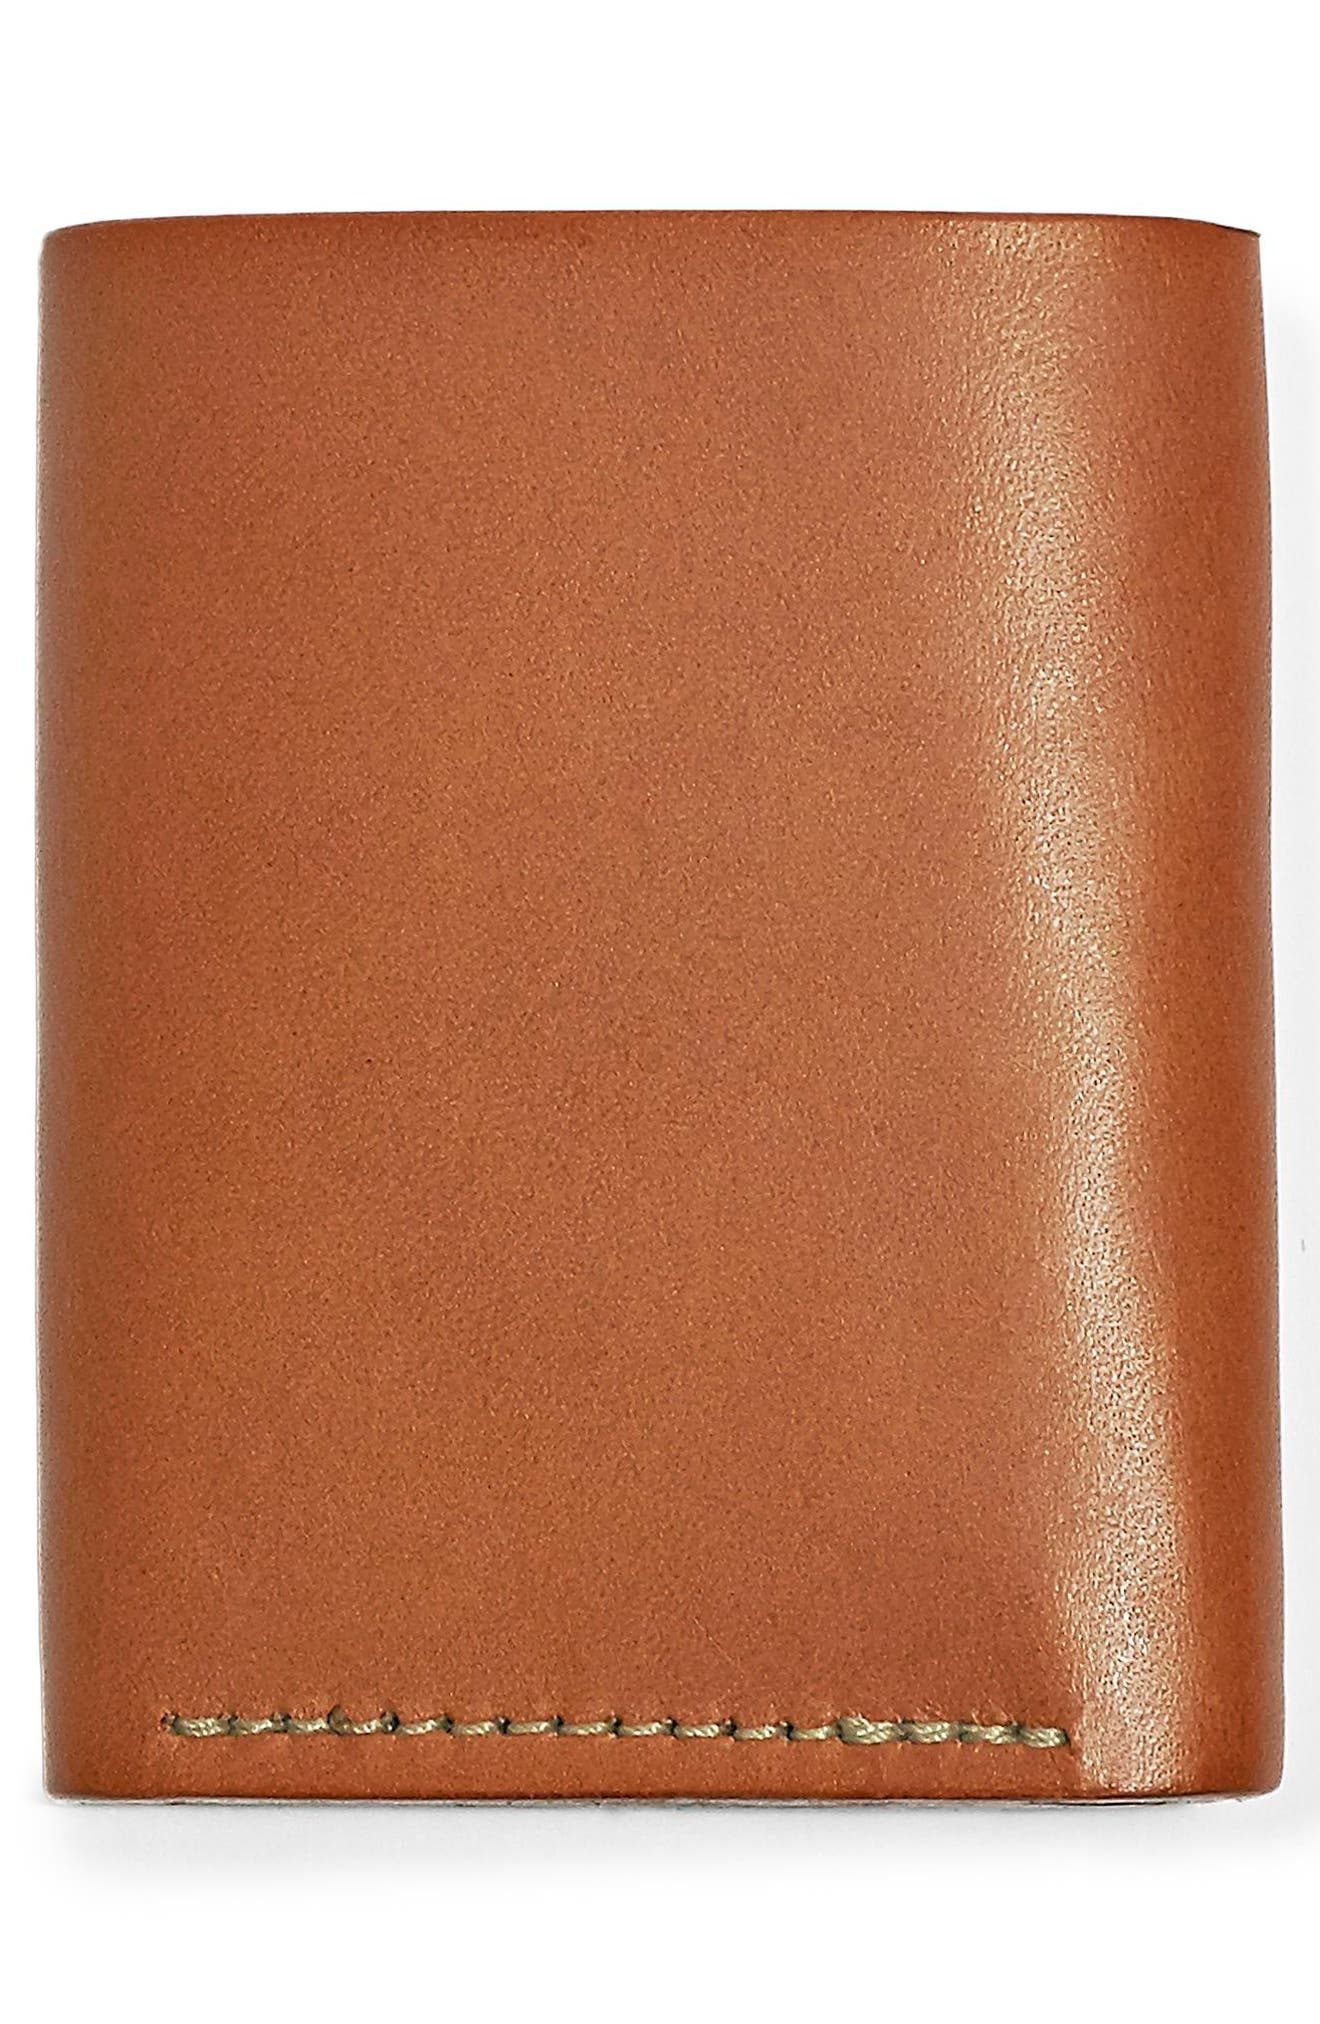 Leather Trifold Leather Wallet,                             Alternate thumbnail 5, color,